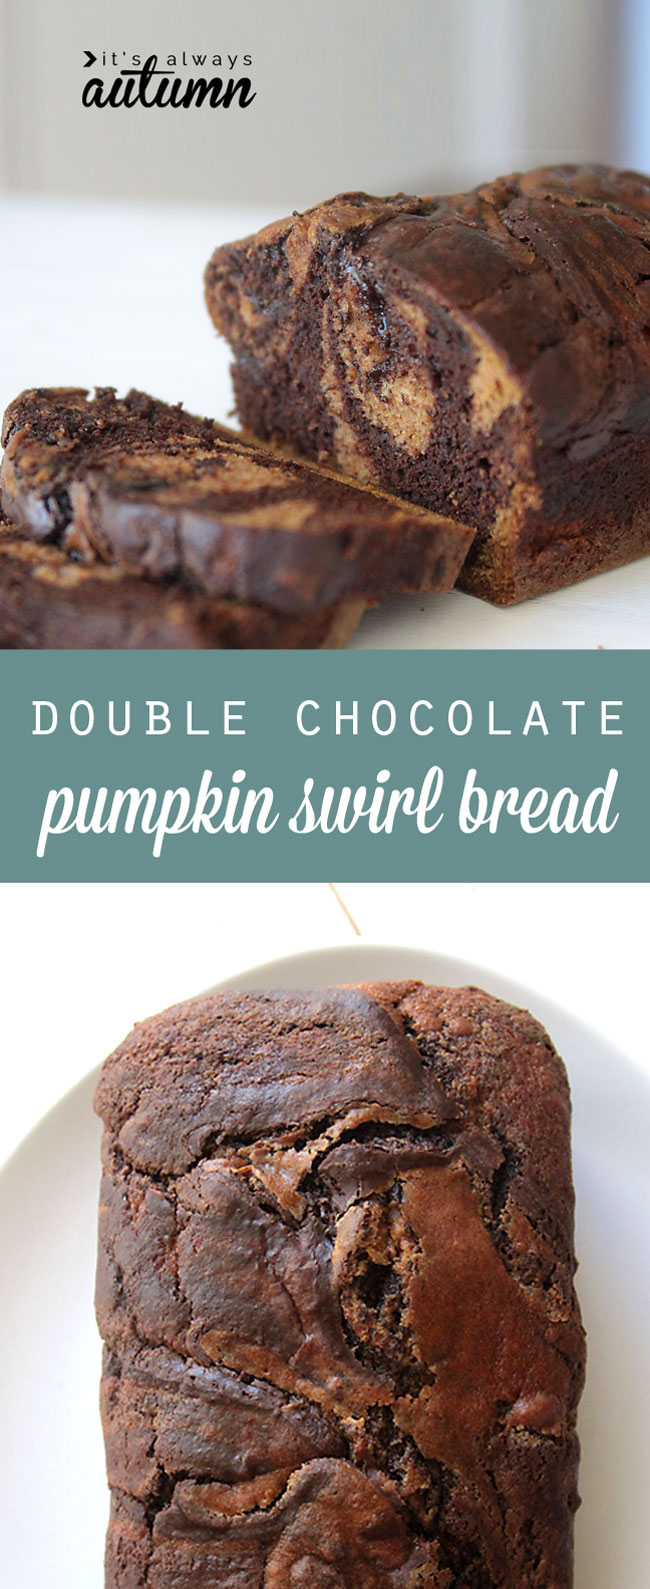 this recipe looks incredible! pumpkin bread swirled with chocolate pumpkin bread and melted chocolate!